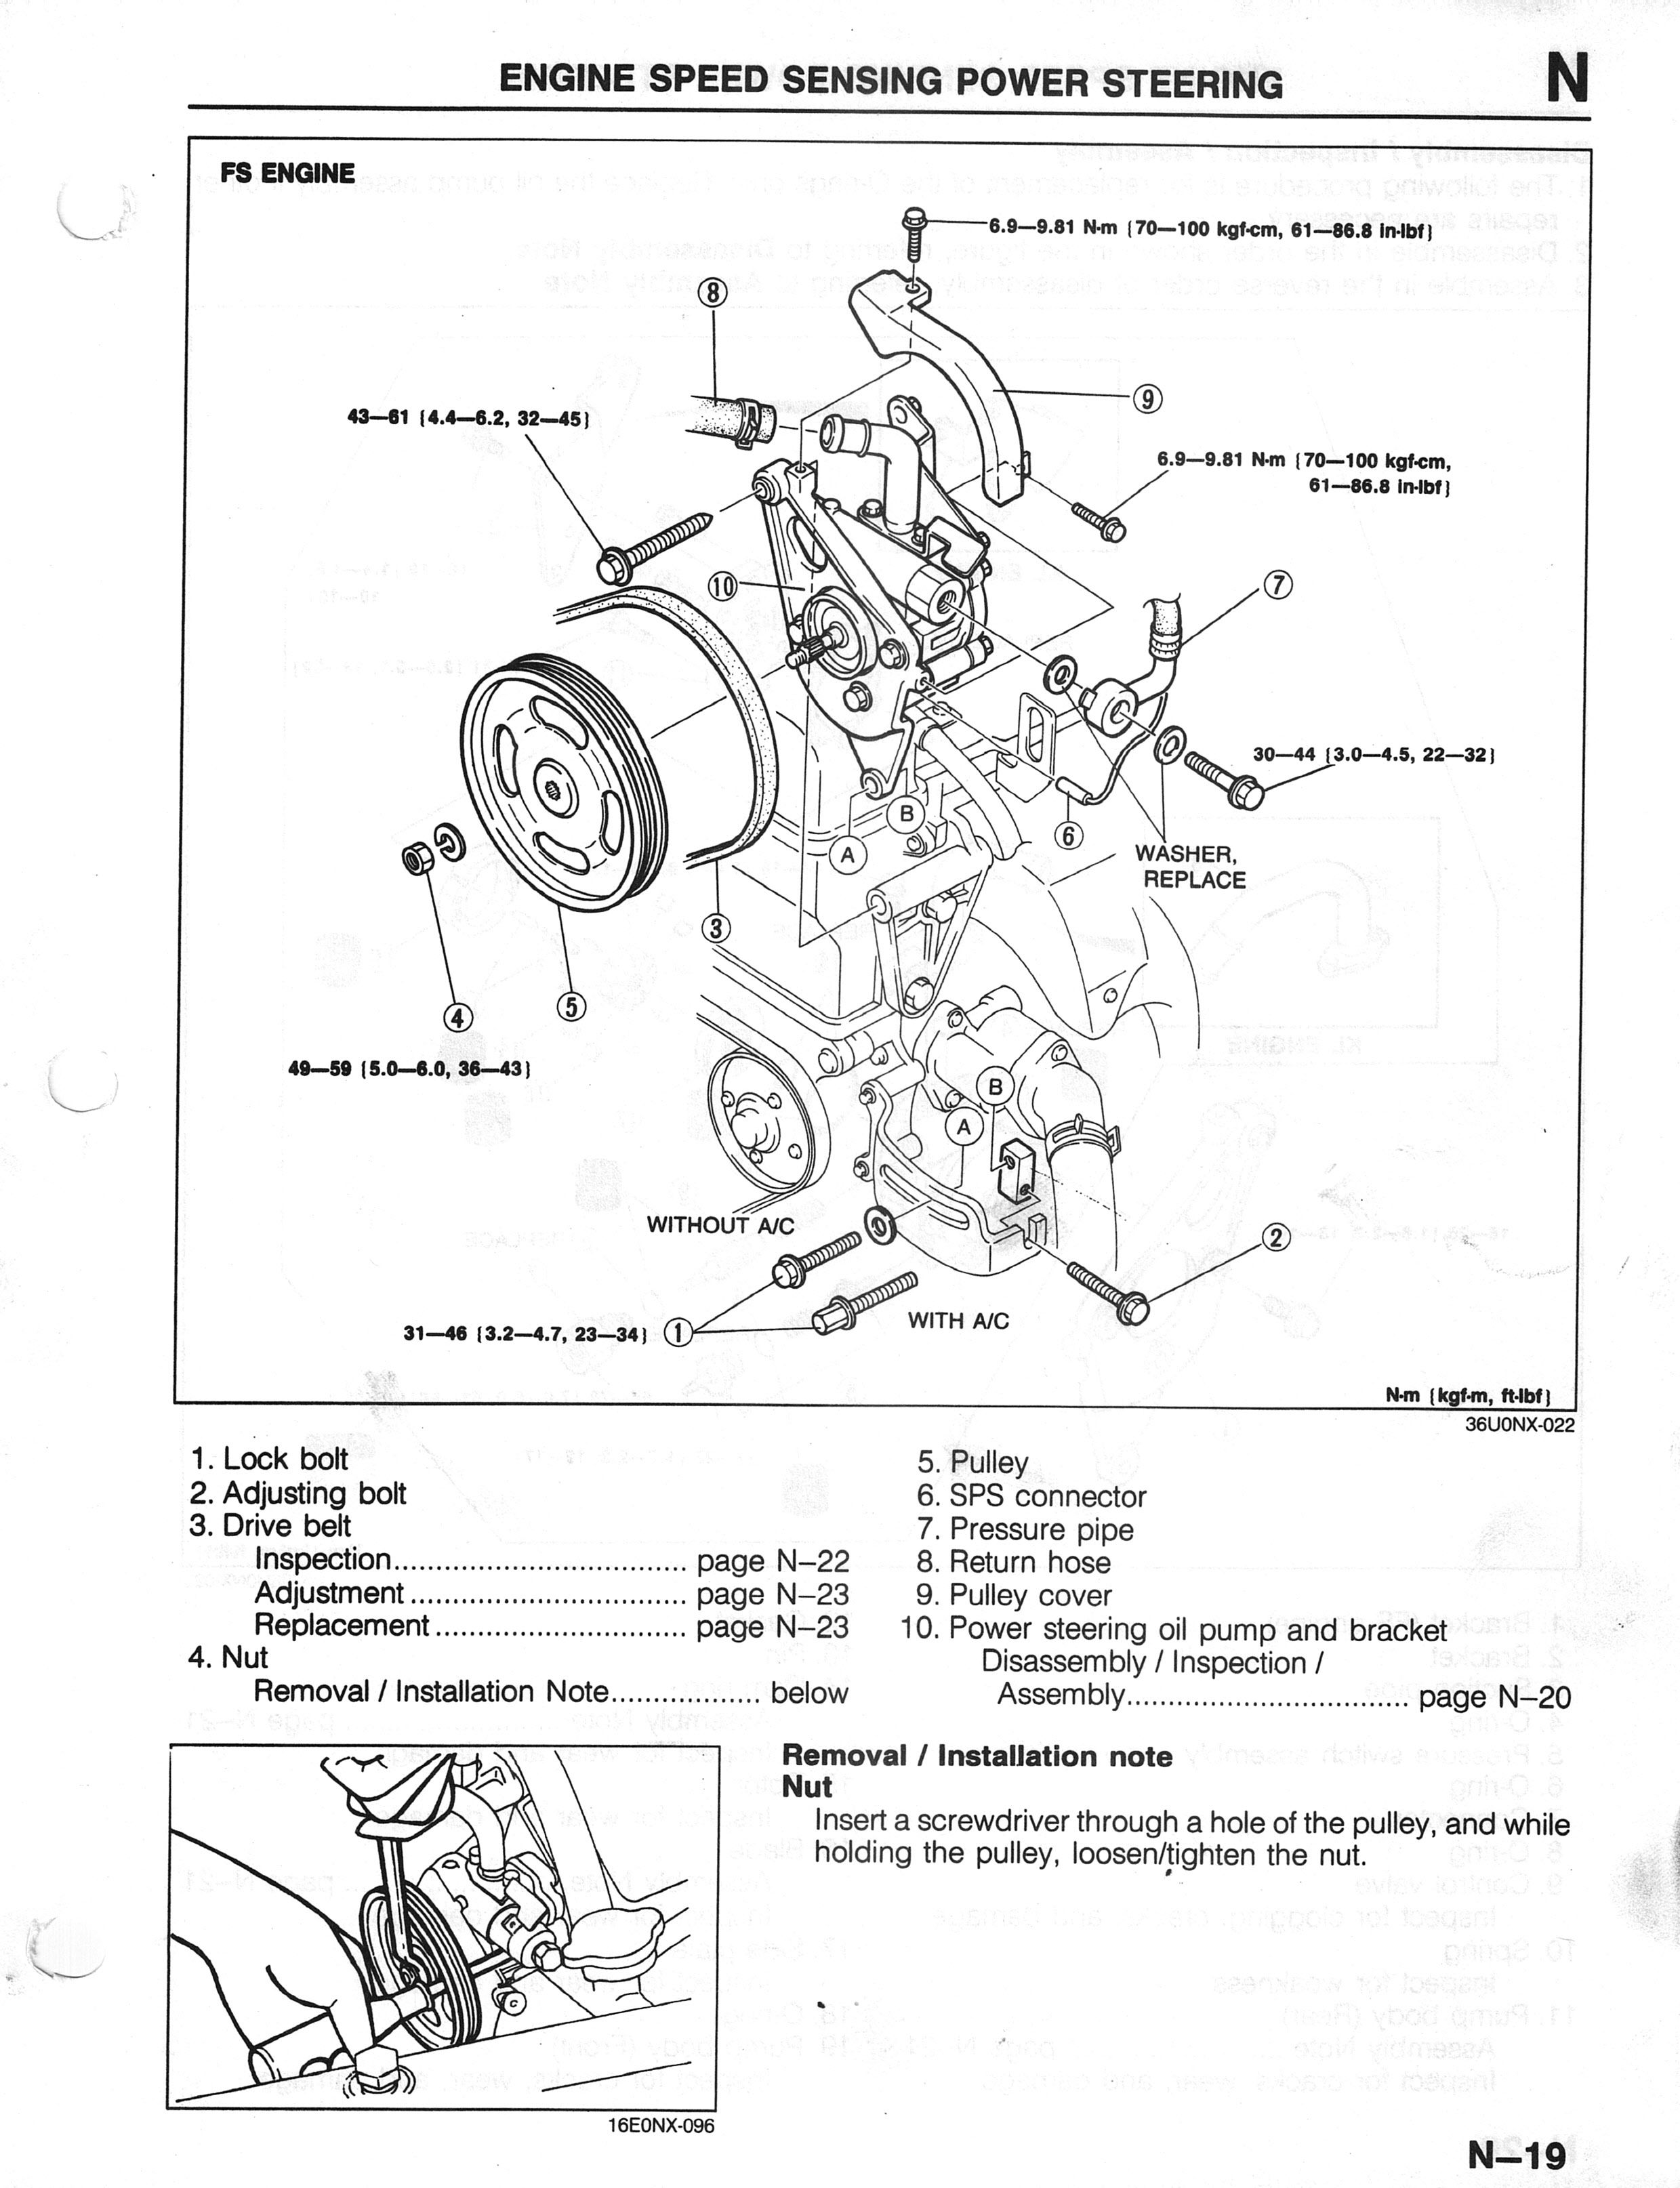 1999 mazda b3000 engine diagram 1999 mazda millenia engine diagram